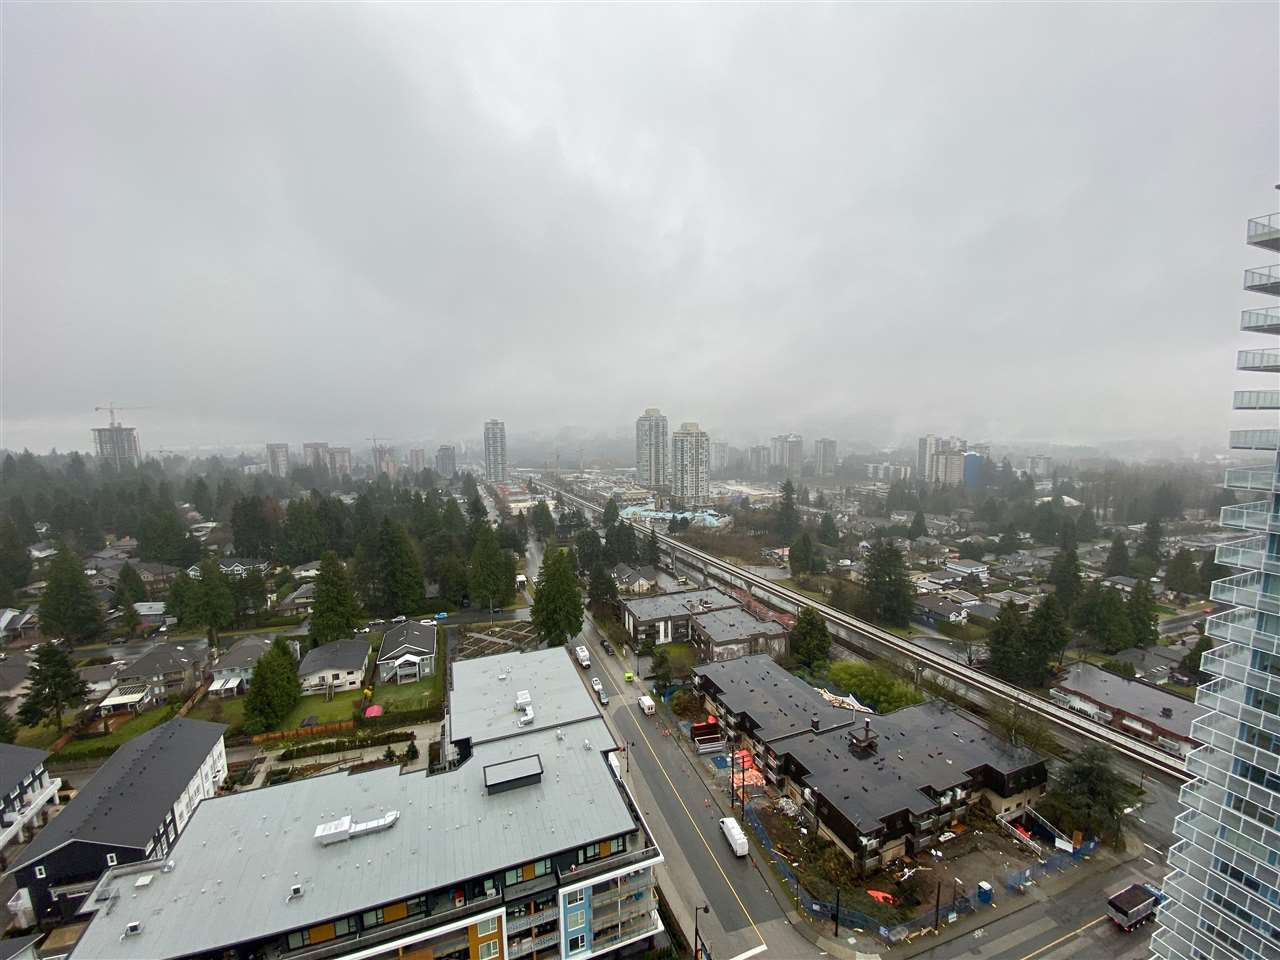 2106 657 WHITING WAY - Coquitlam West Apartment/Condo for sale, 1 Bedroom (R2481418) - #7